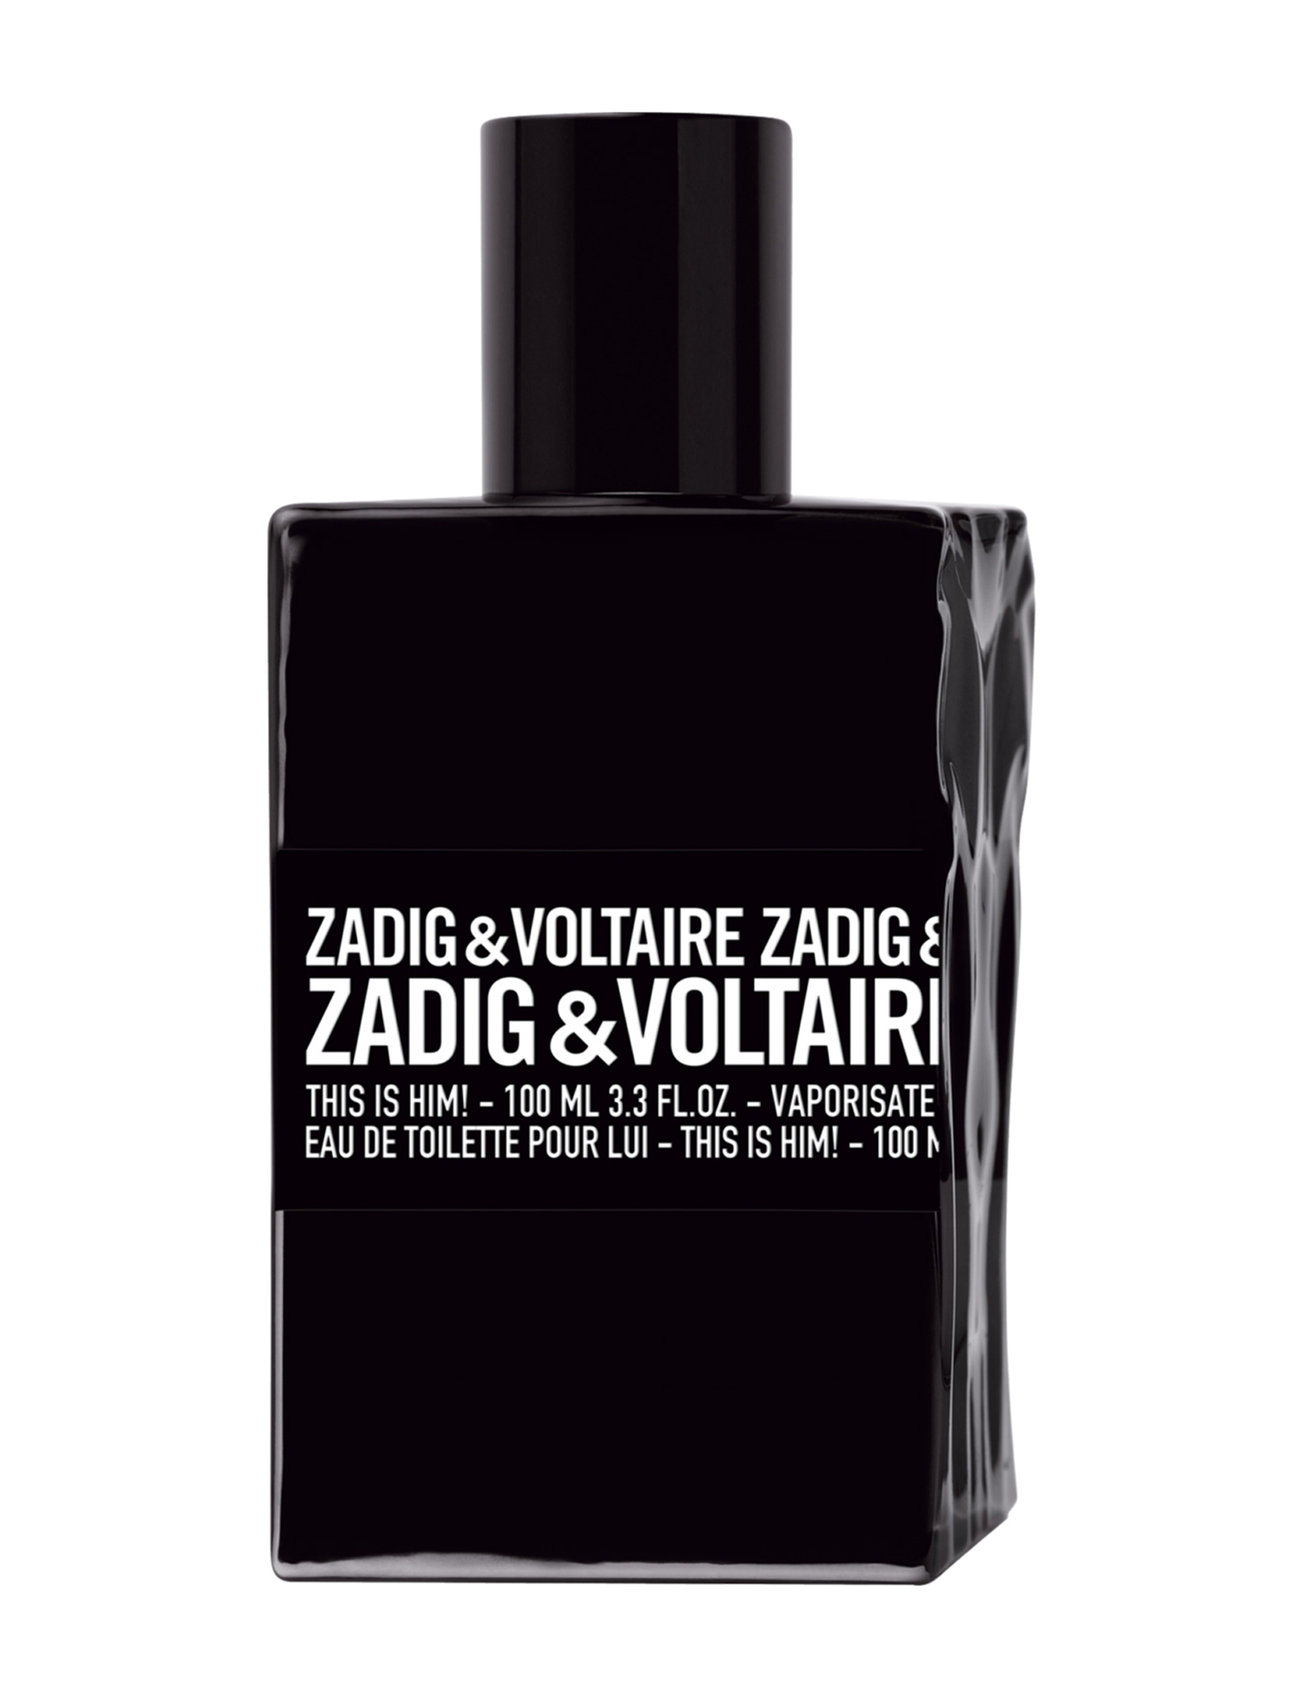 zadig & voltaire fragrance – Zadig & voltaire this is him! eau d på boozt.com dk